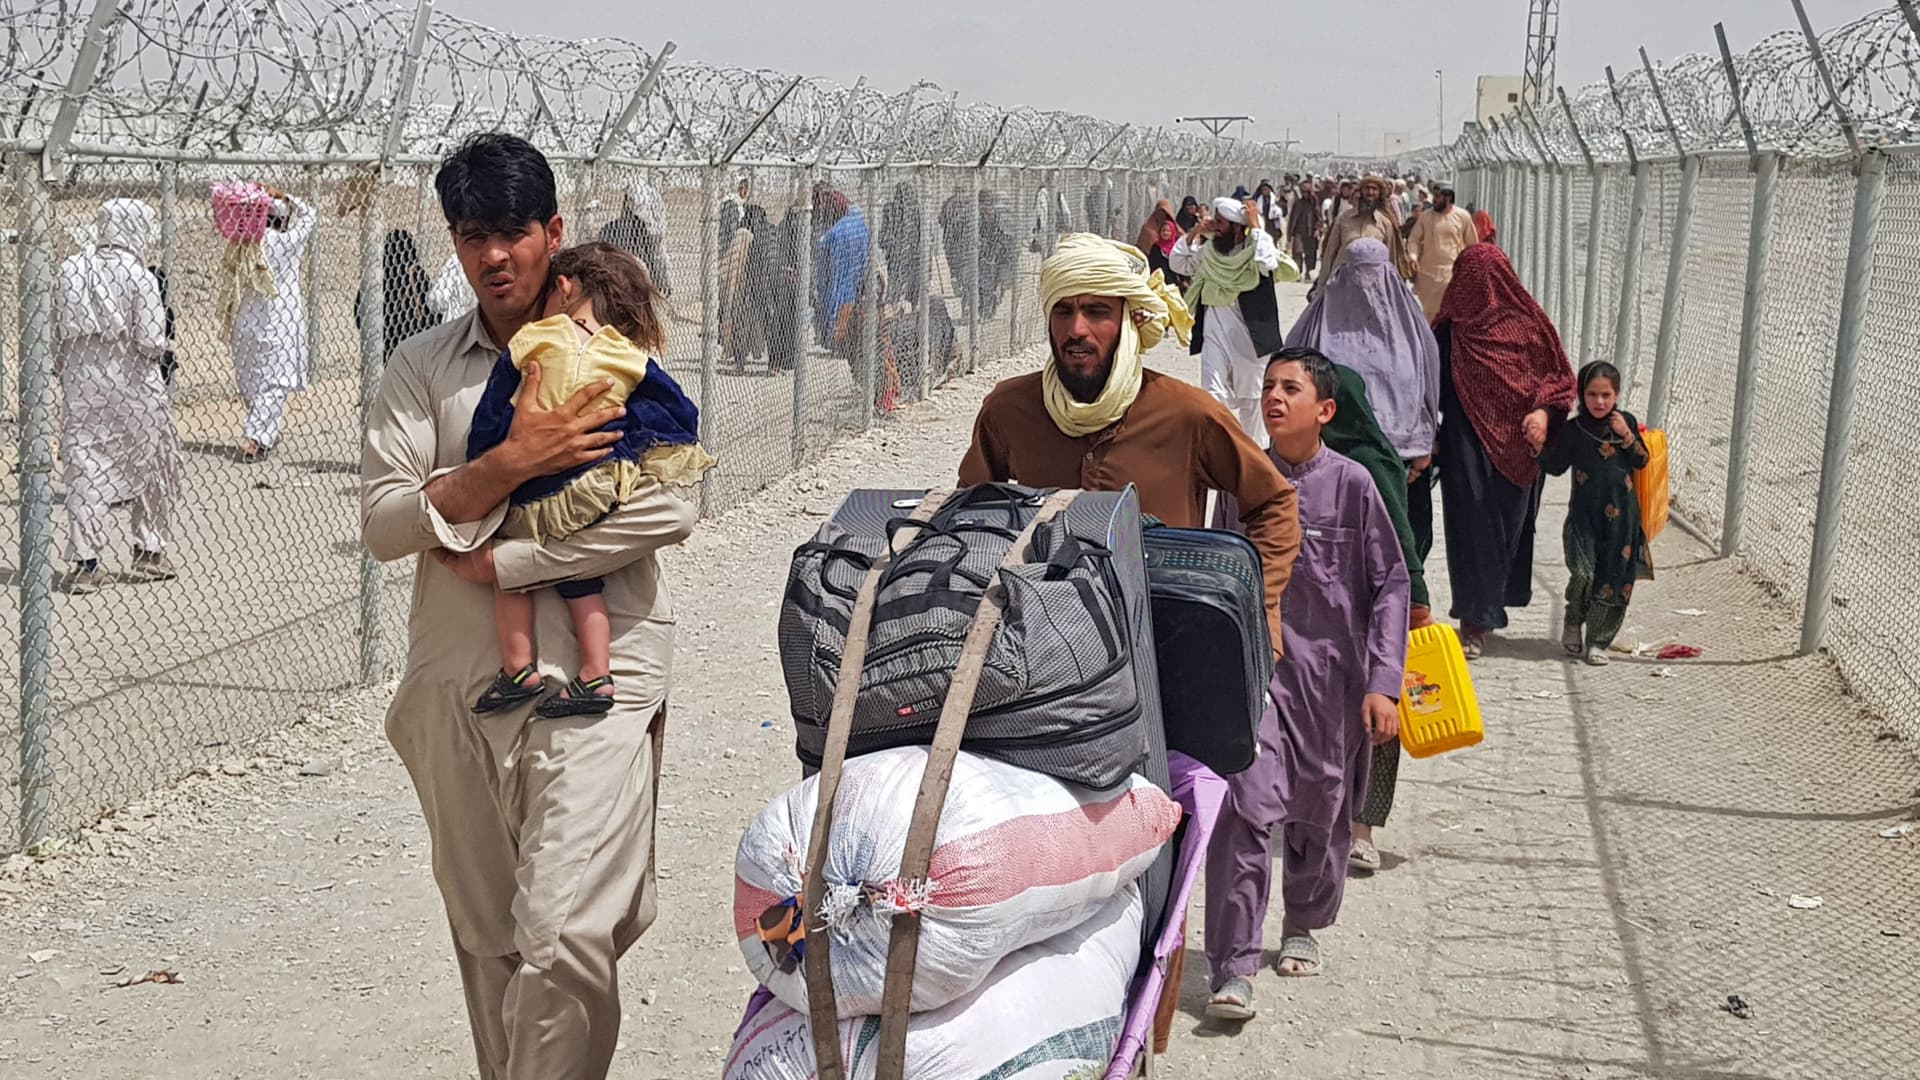 Stranded Afghan nationals arrive to return back to Afghanistan at the Pakistan-Afghanistan border crossing point in Chaman on August 16, 2021 as the Taliban were in control of Afghanistan after President Ashraf Ghani fled the country and conceded the insurgents had won the 20-year war.